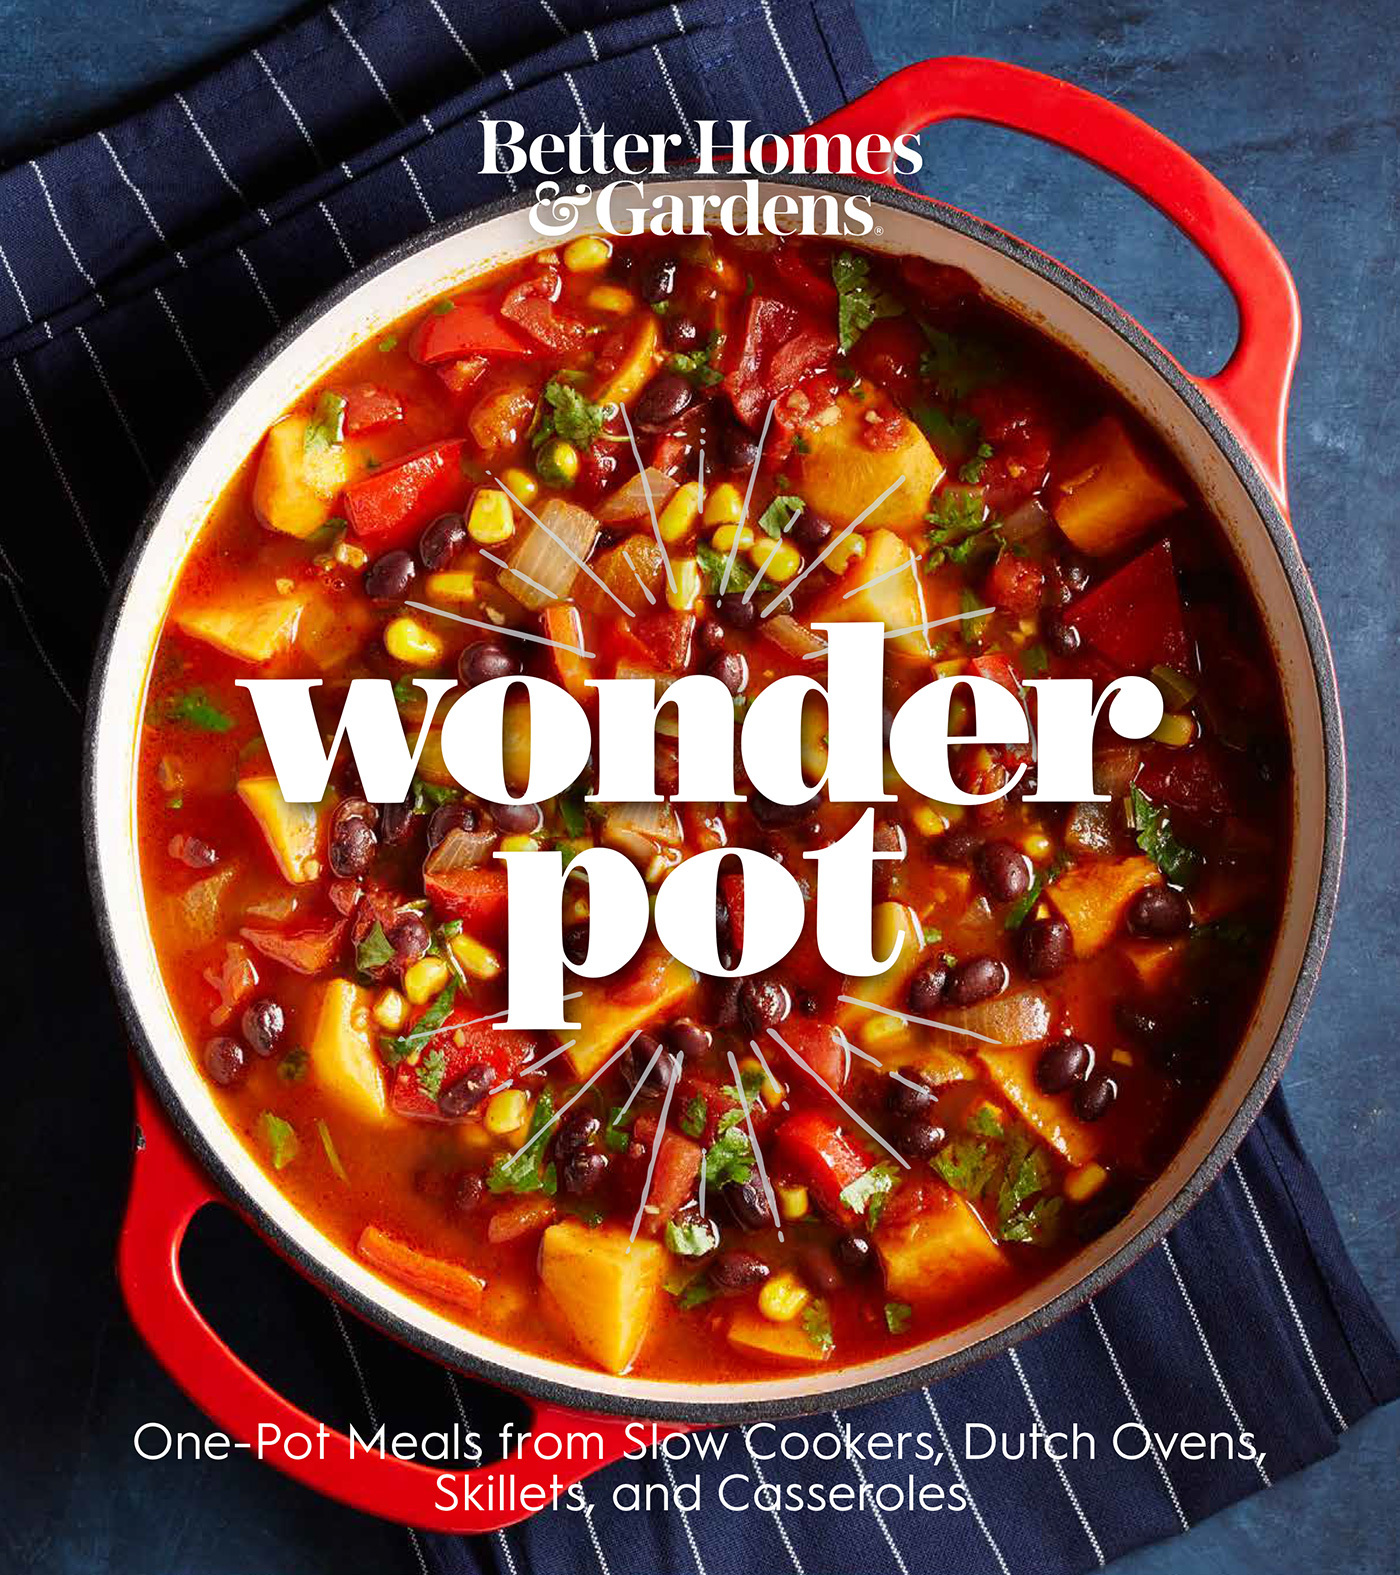 Better Homes and Gardens Wonder Pot One-Pot Meals from Slow Cookers, Dutch Ovens, Skillets, and Casseroles